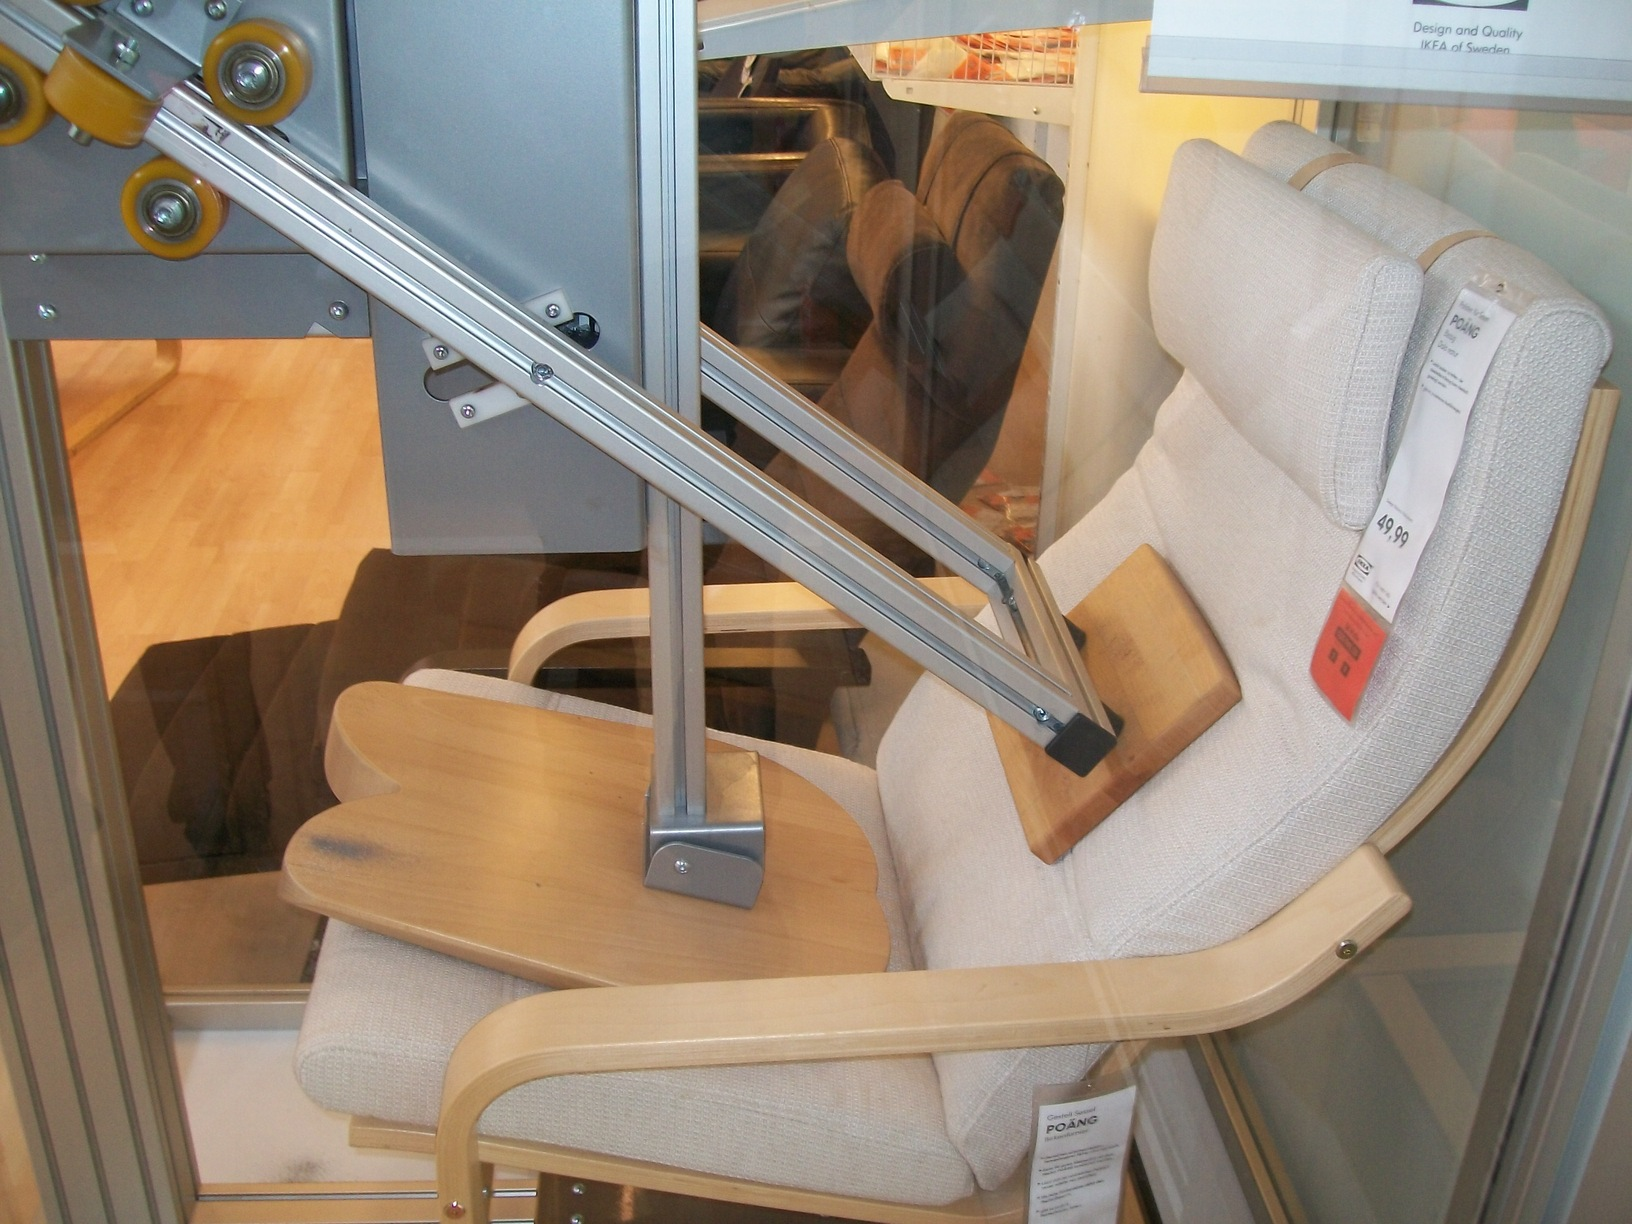 "At IKEA there are chairs like this one which are being tested by having a robot ""sit"" on them repeatedly with a robotic wooden bum. This chair was shown in a glass case for demonstration purposes, being sat on again and again for everyone's enjoyment."